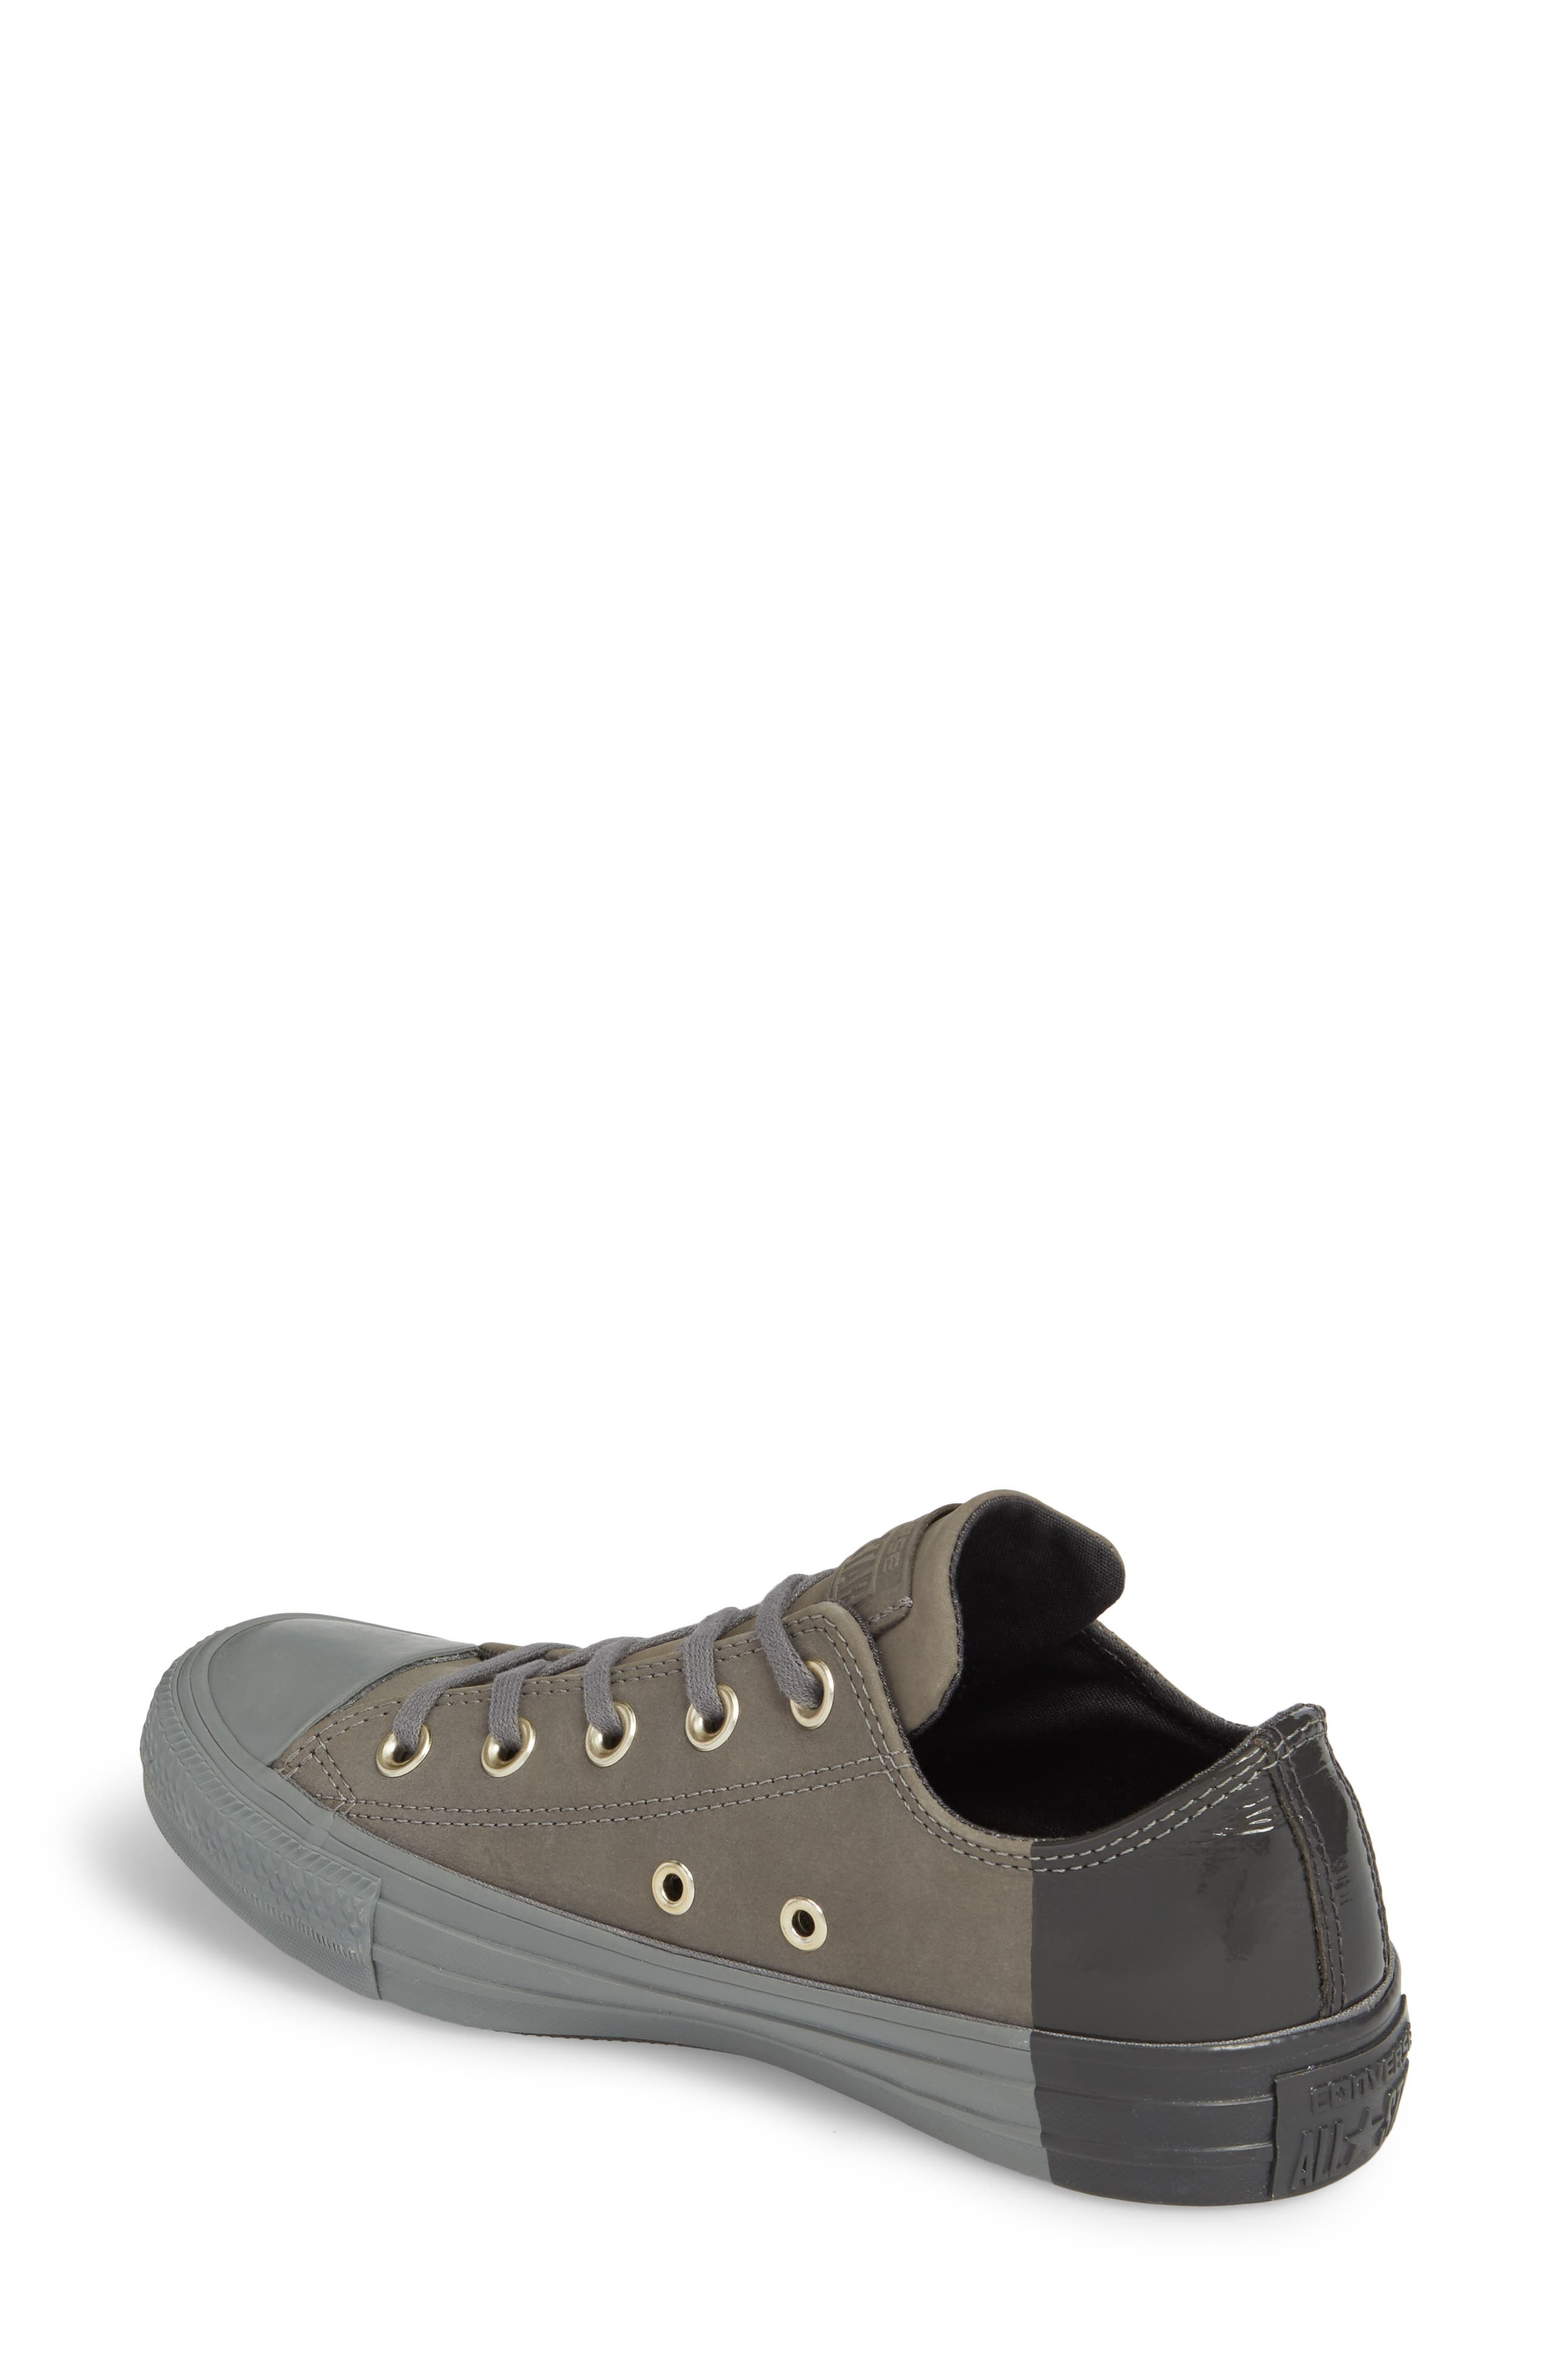 All Star<sup>®</sup> Nubuck OX Low Top Sneaker,                             Alternate thumbnail 2, color,                             028